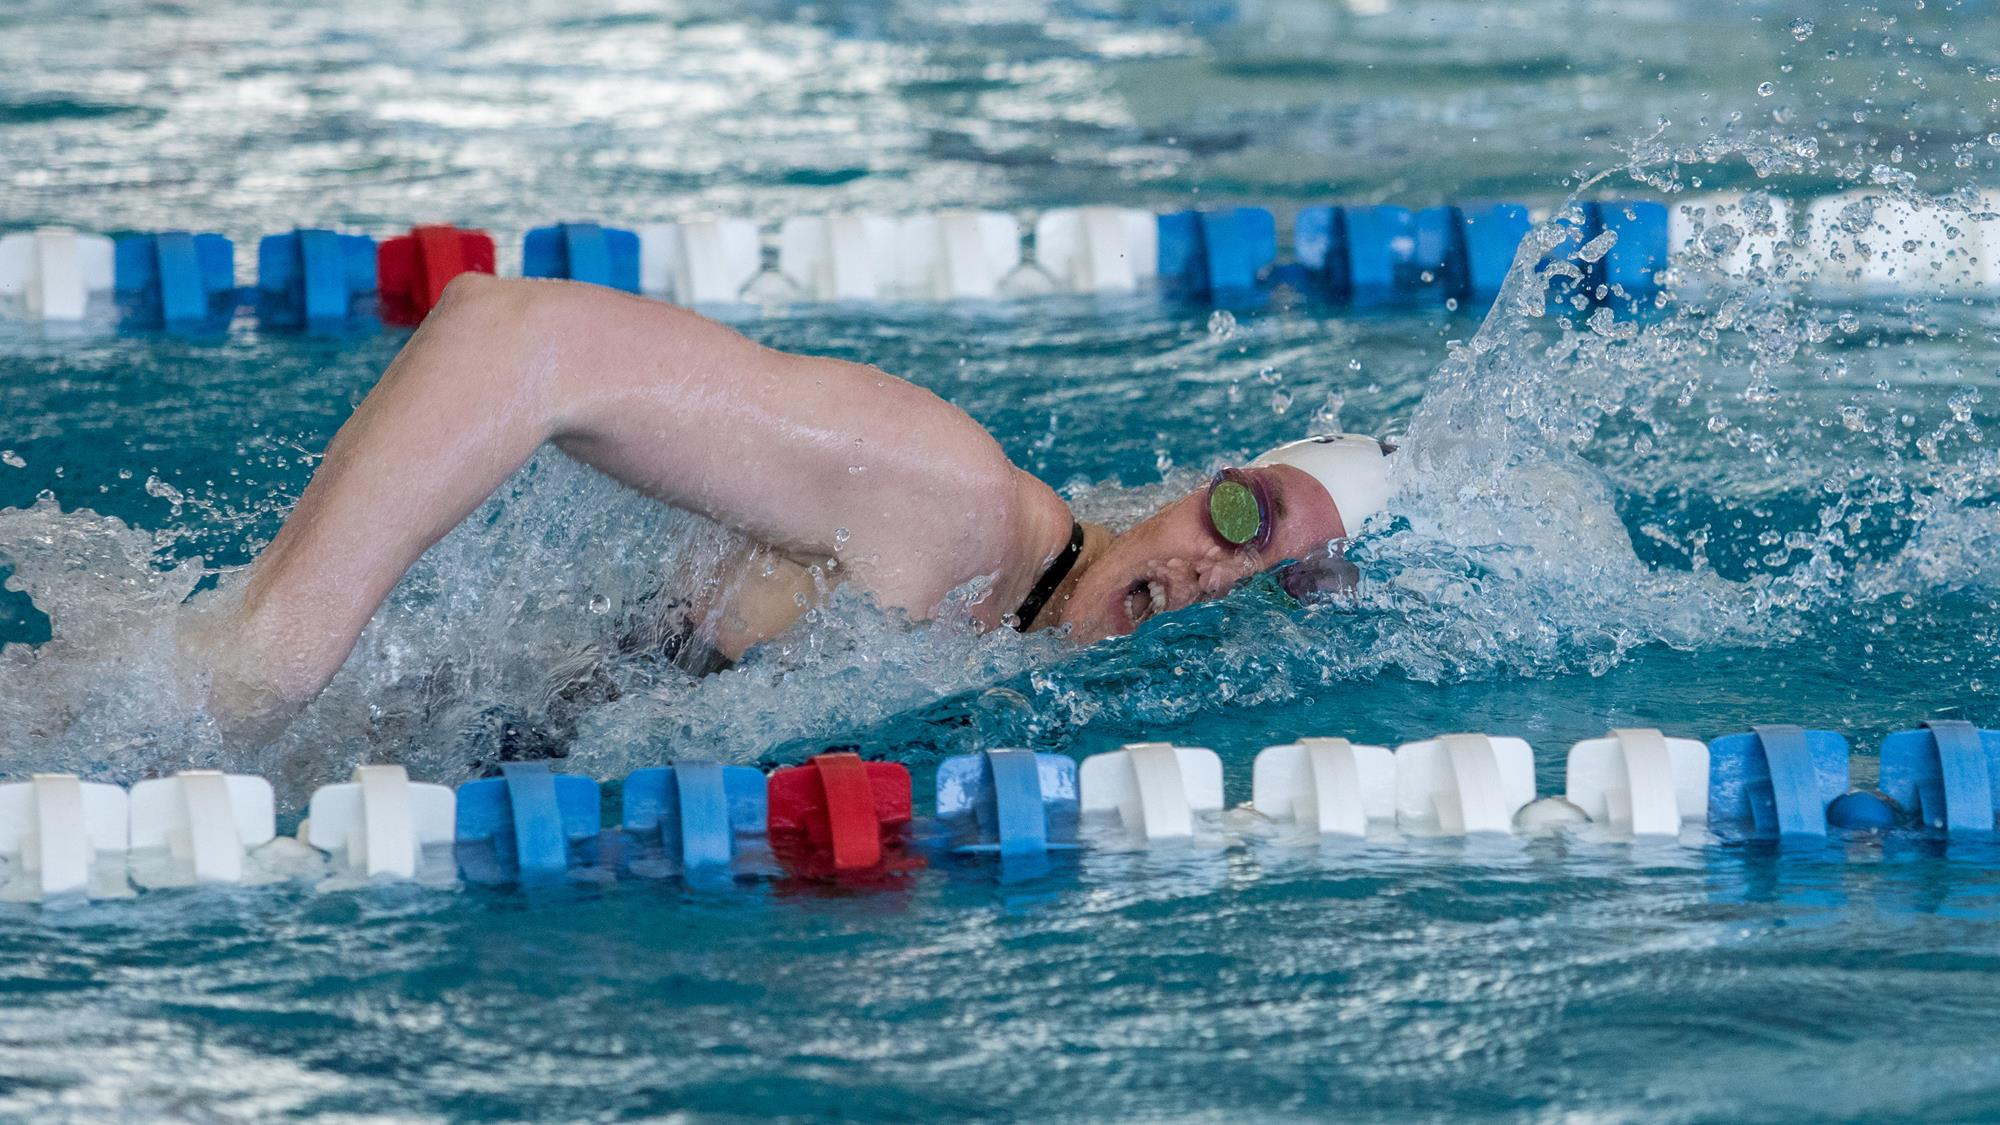 PREVIEW: GS Swimming U0026 Diving Ready For CCSA Championships This Week